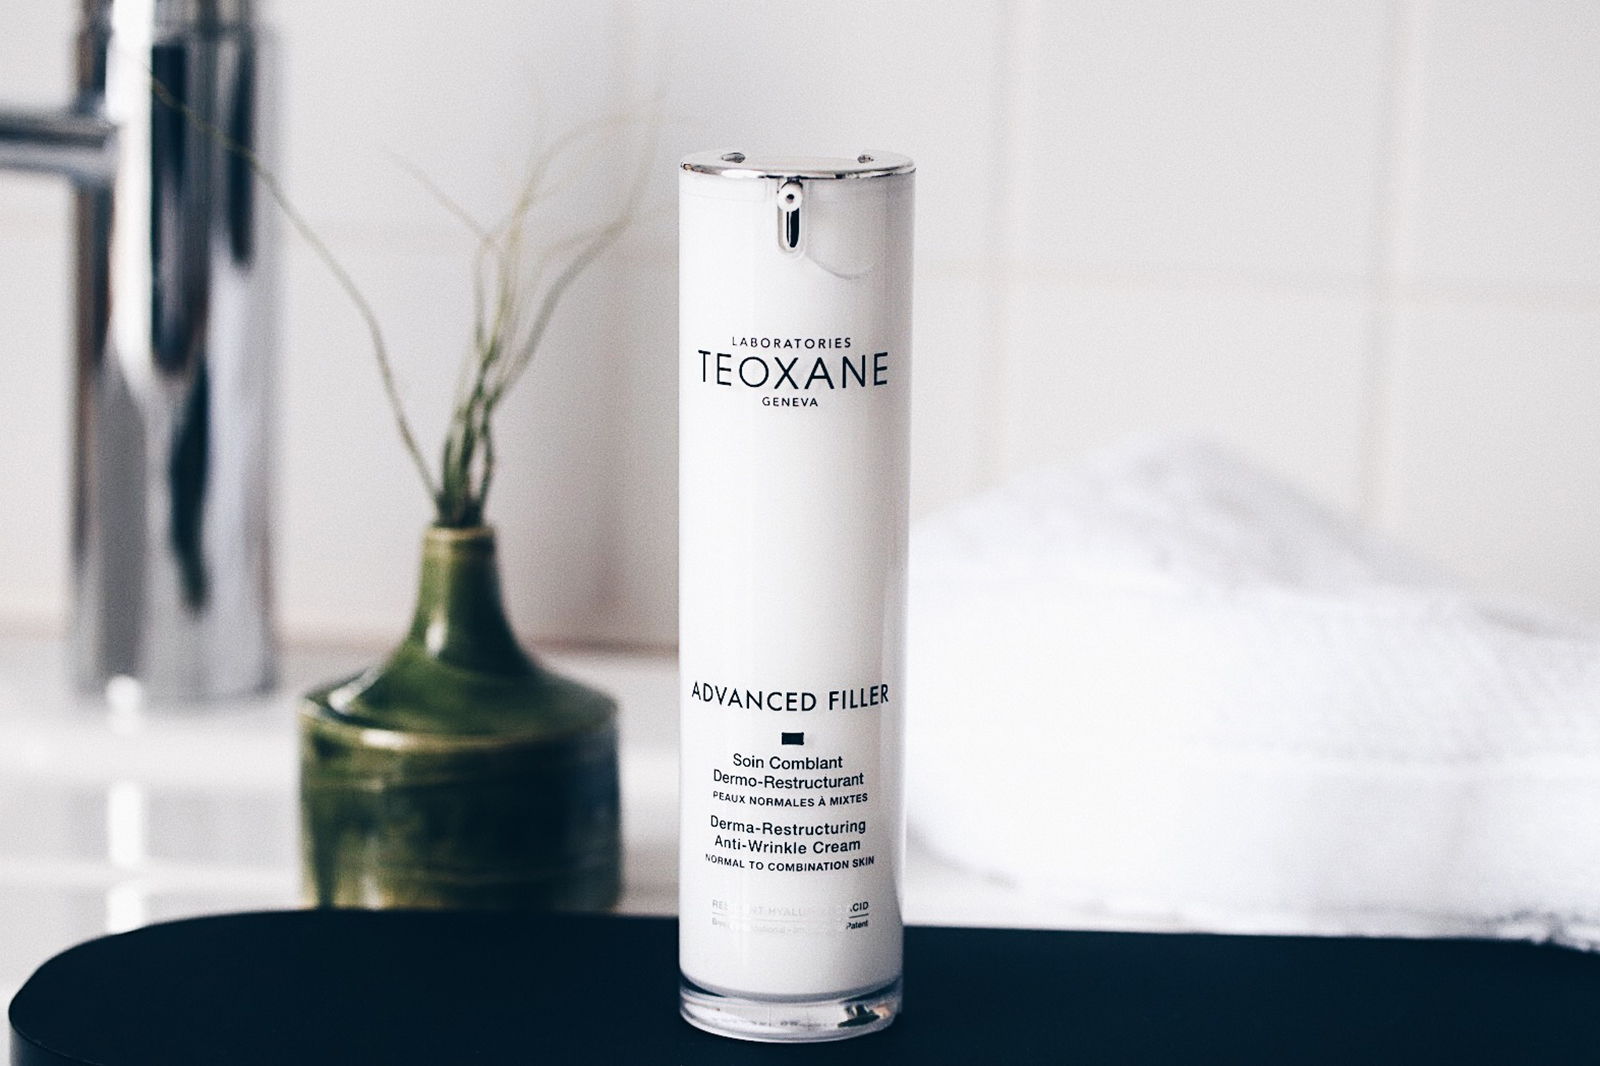 teoxane advanced filler soin hydratant avis test